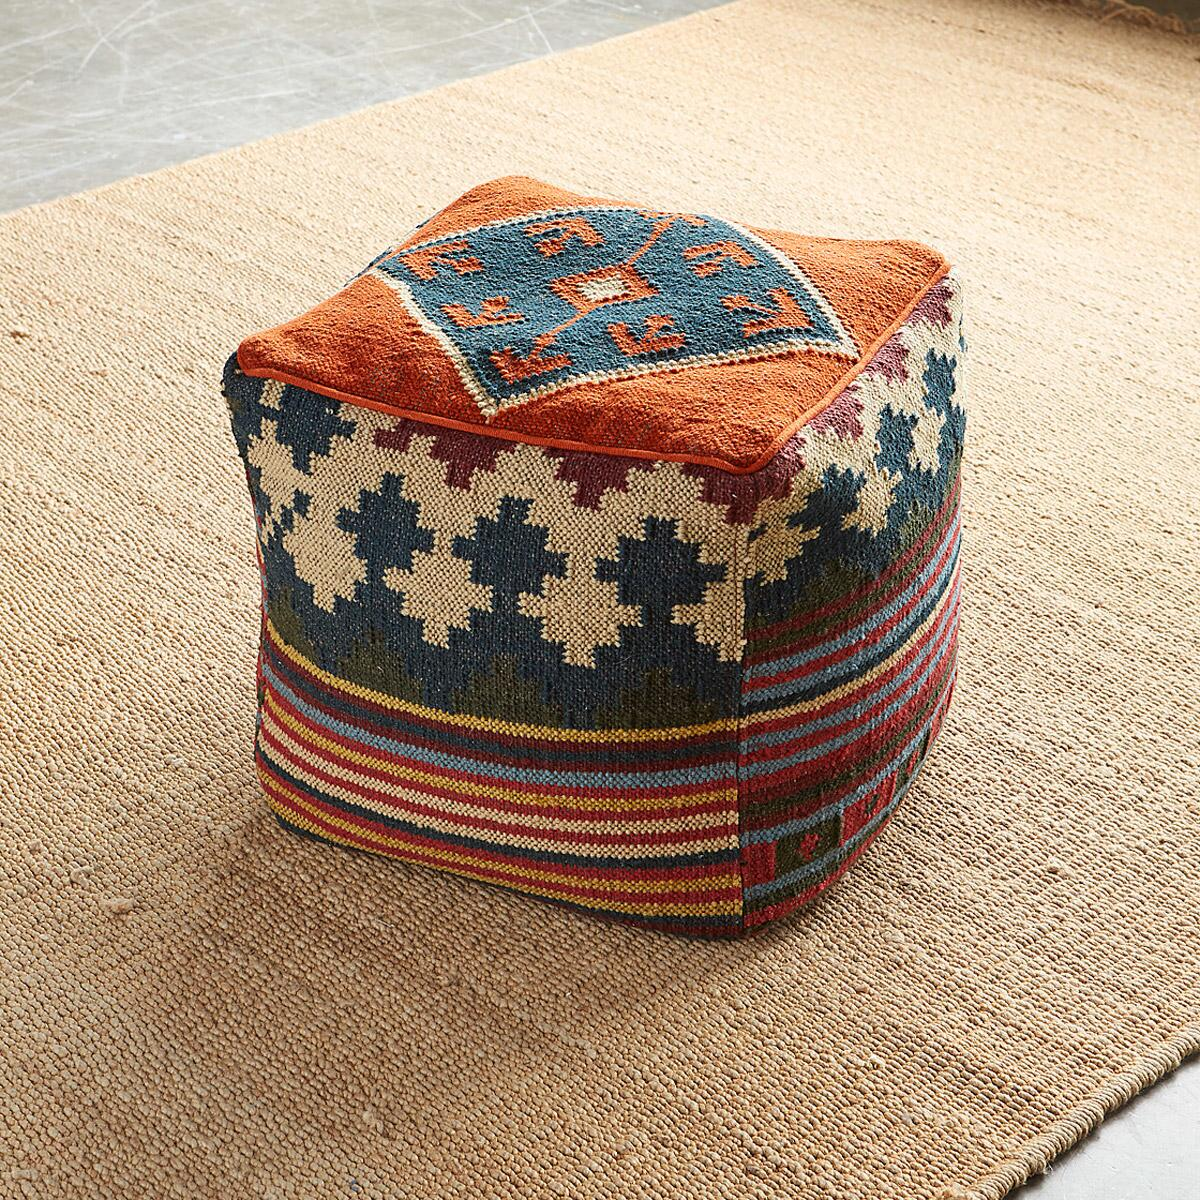 new product 860c9 02dcb Lightweight Wool/Cotton Pouf | Robert Redford's Sundance Catalog